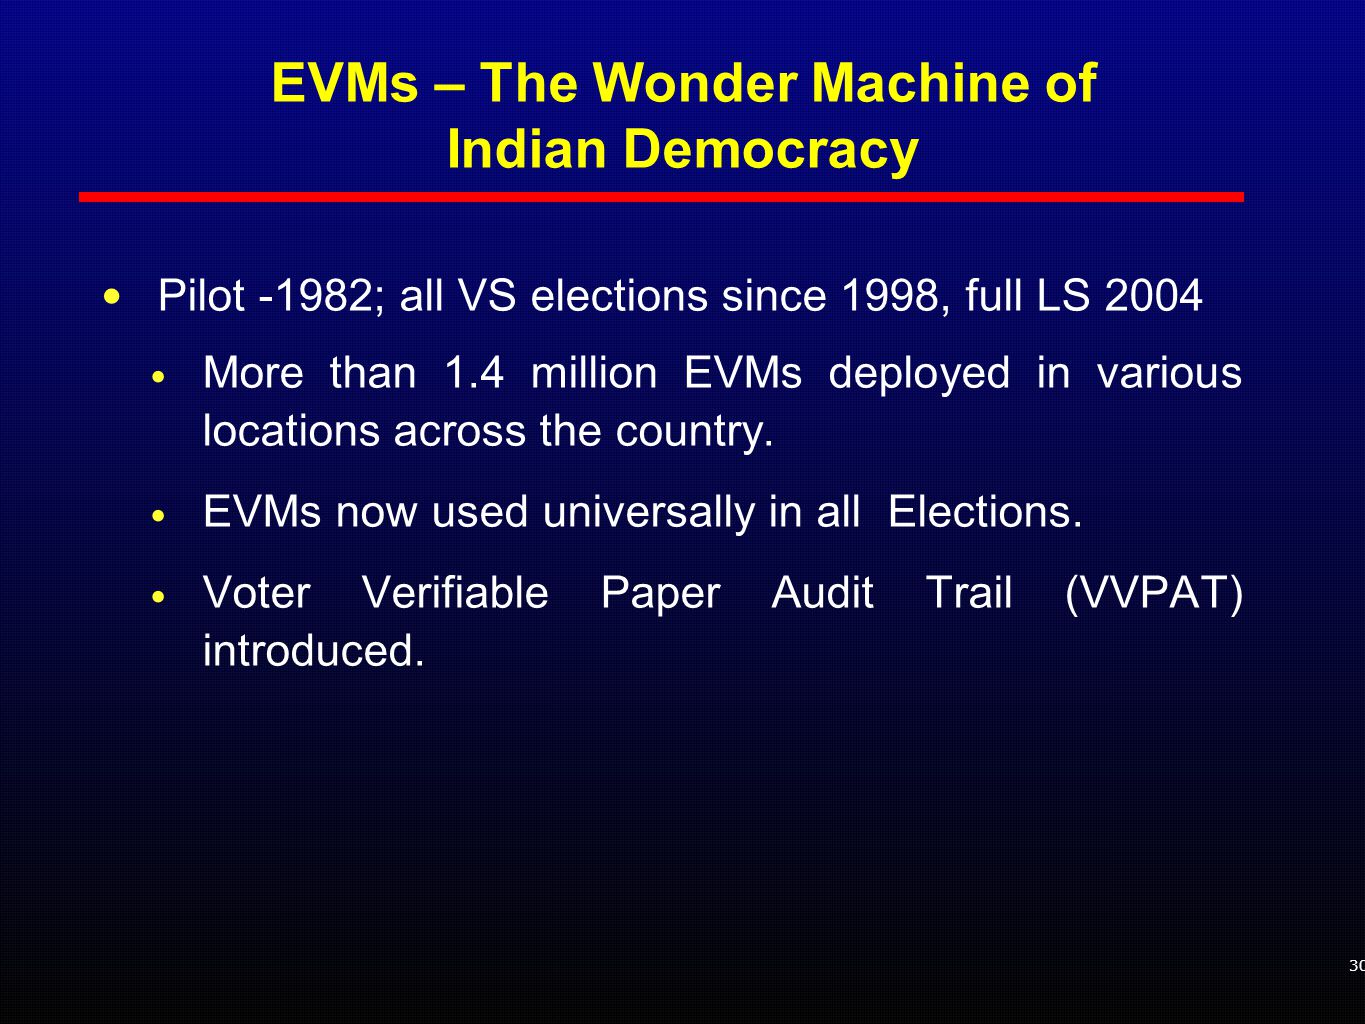 Pilot -1982; all VS elections since 1998, full LS 2004 More than 1.4 million EVMs deployed in various locations across the country.